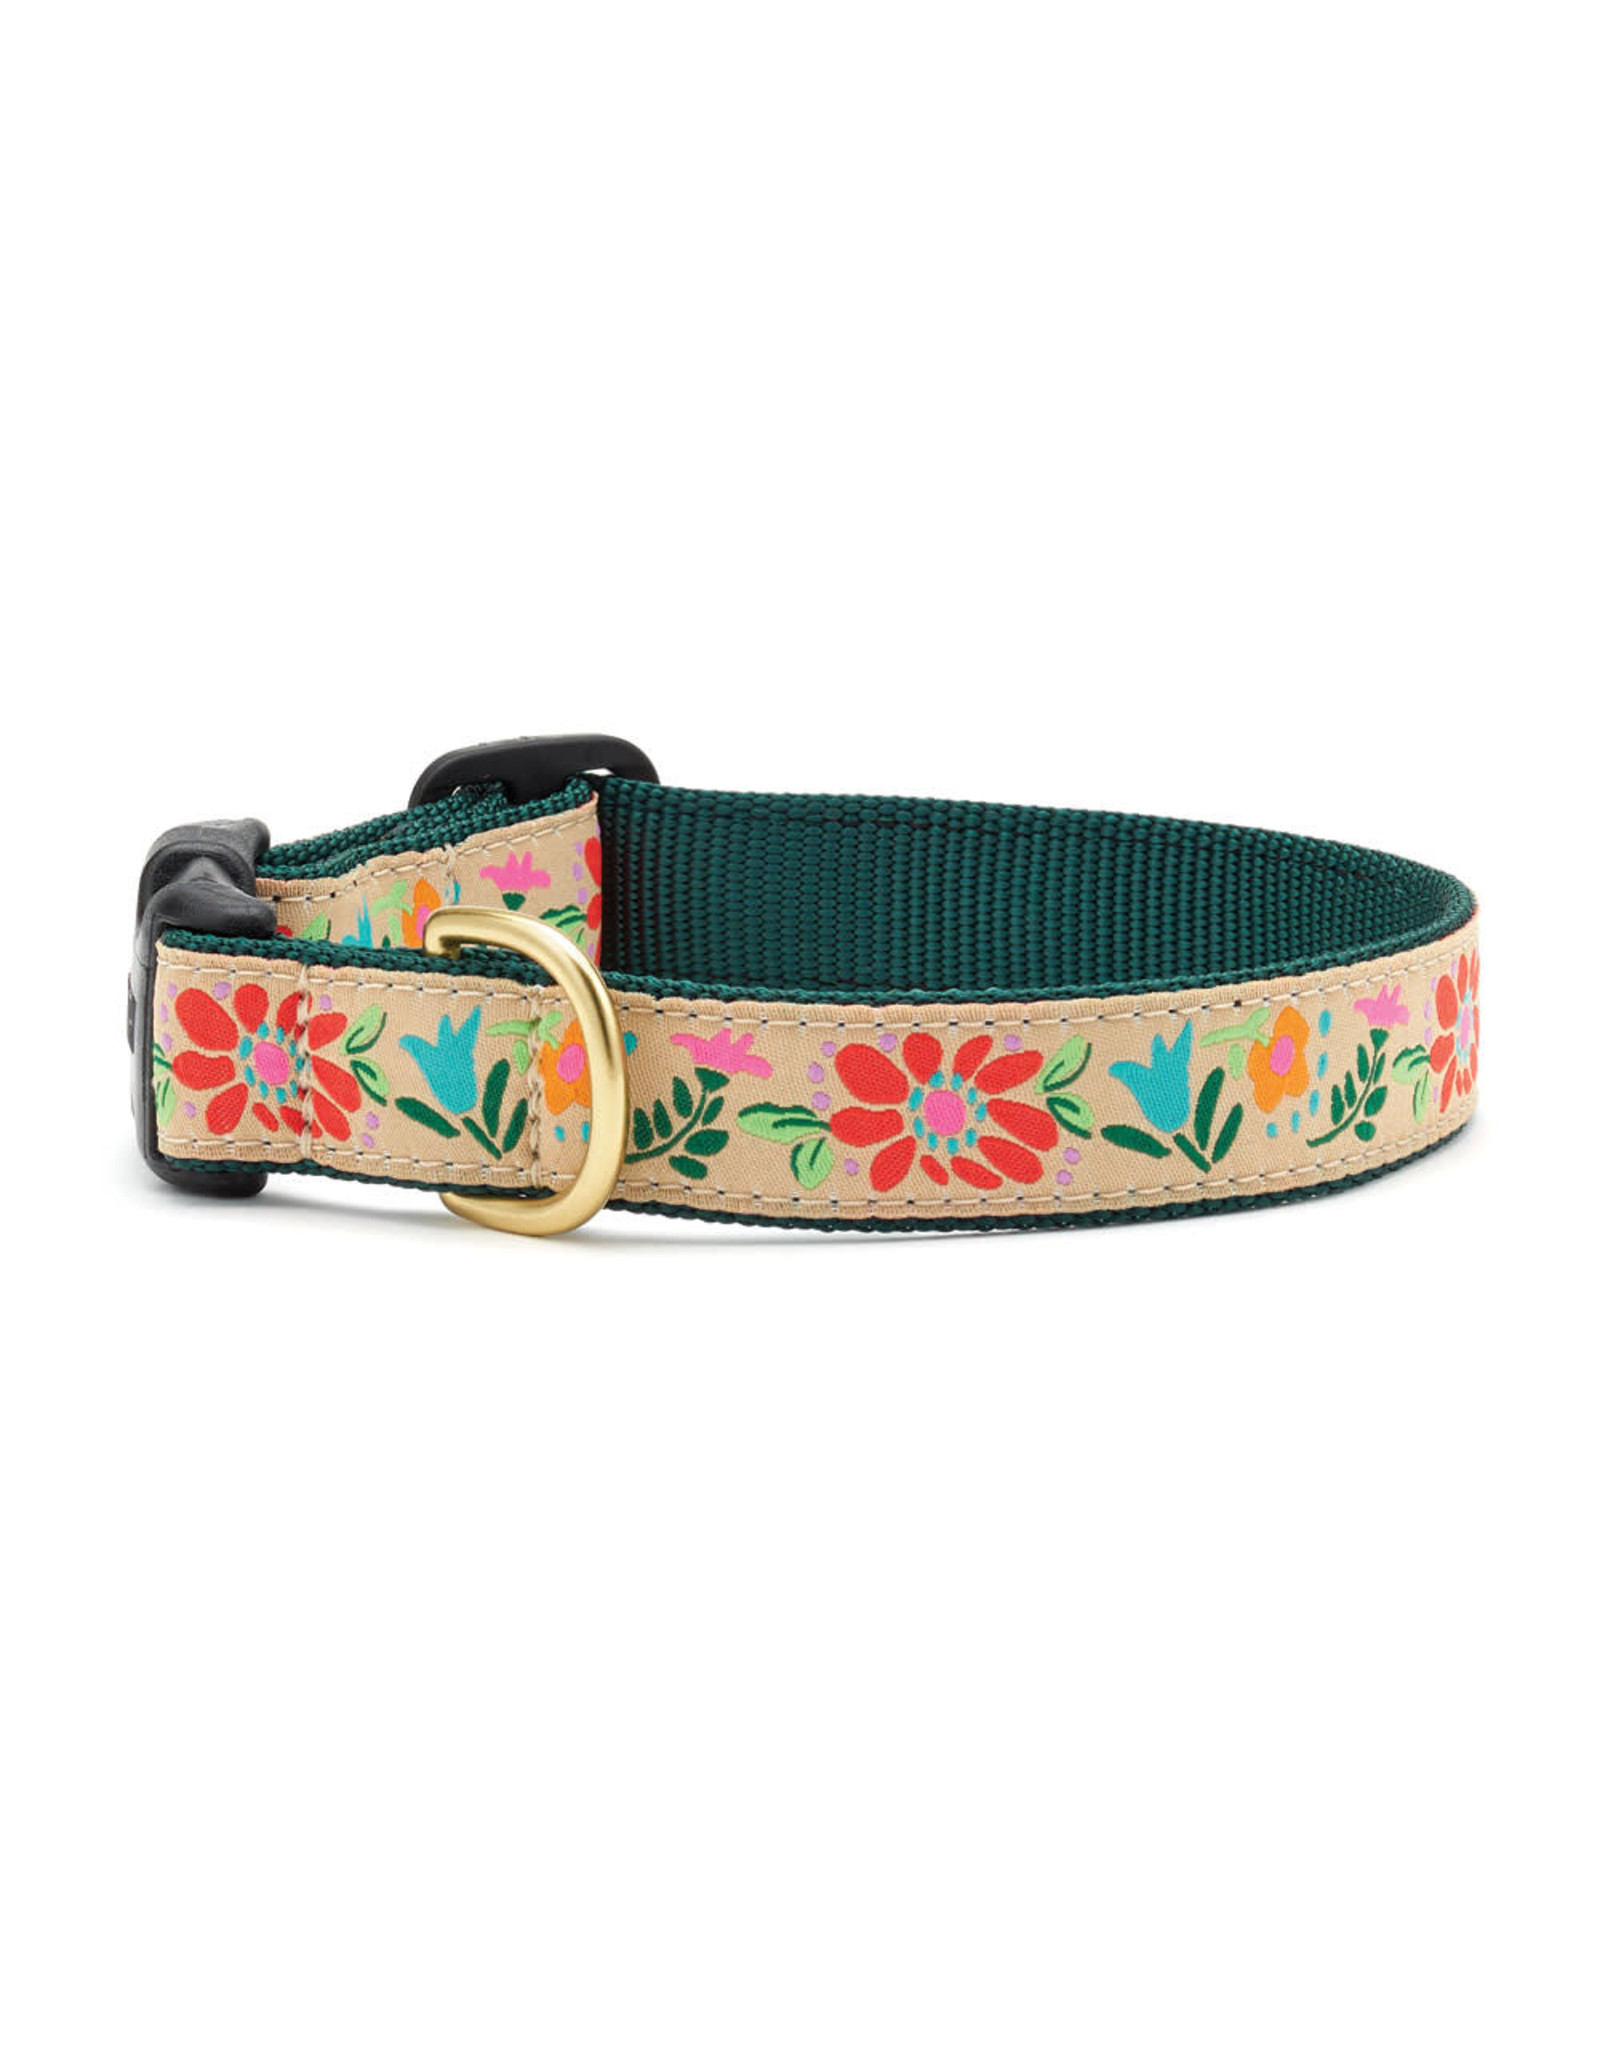 Up Country Tapestry Floral Collar Collar: Narrow, S